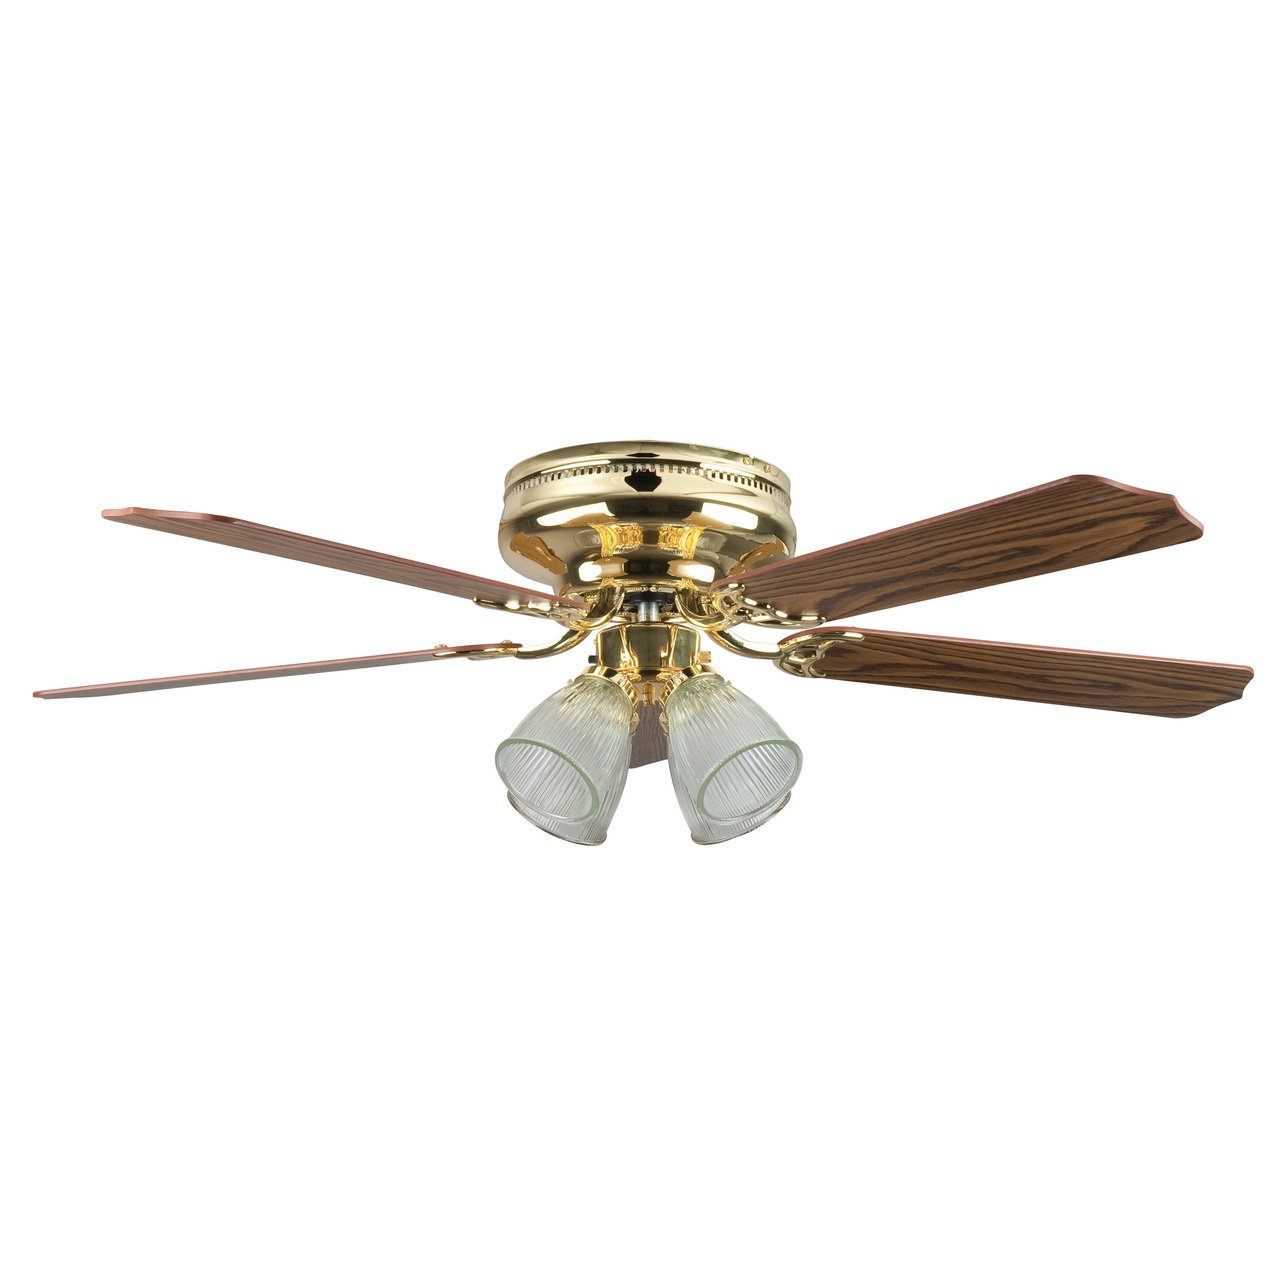 Amazon concord fans montego bay deluxe ceiling fan with 4 light amazon concord fans montego bay deluxe ceiling fan with 4 light kit kitchen dining mozeypictures Gallery